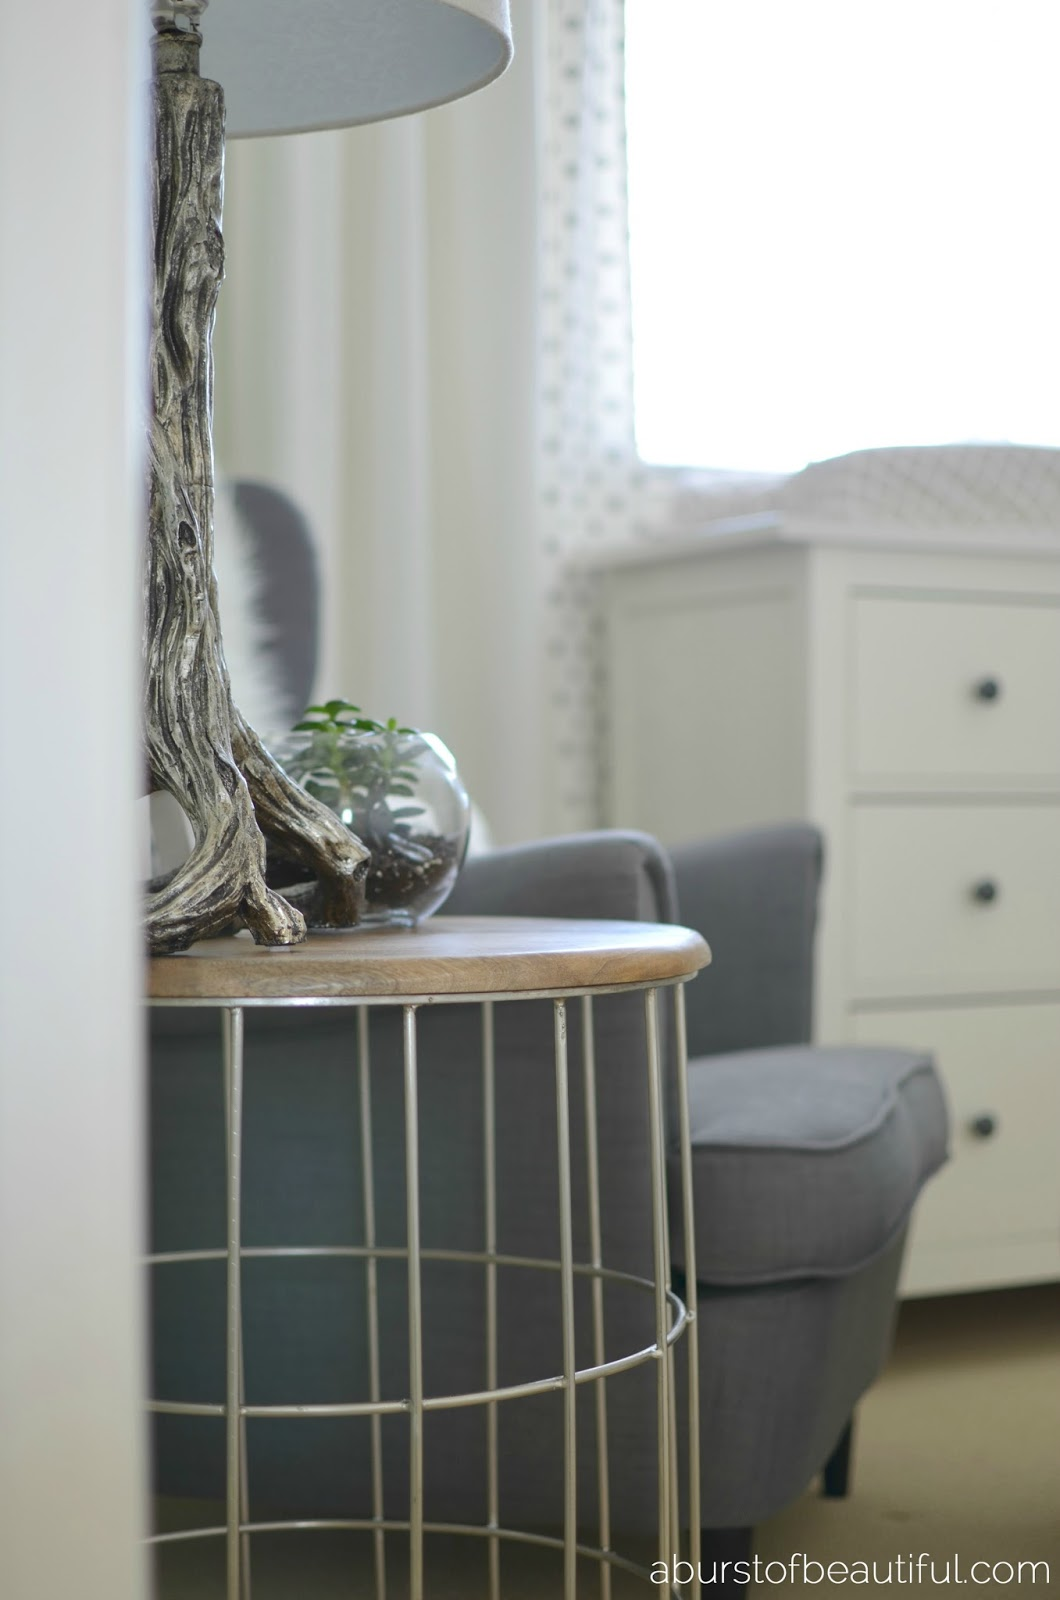 A soft and soothing gender neutral nursery | A Burst of Beautiful